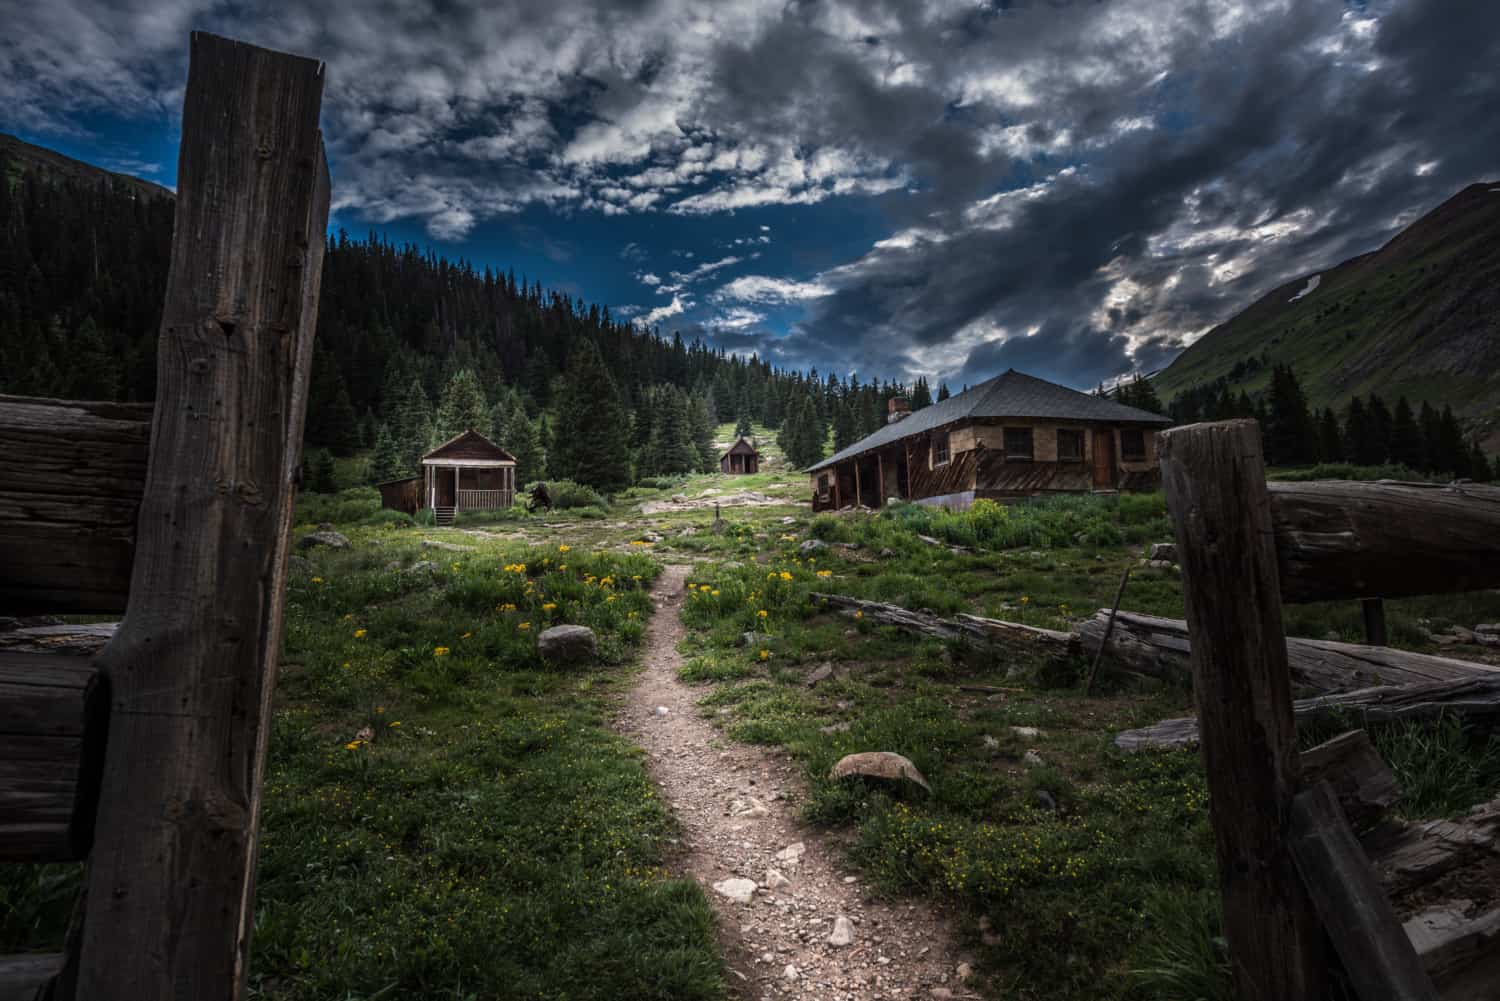 Night photo of the ghost town of Animas Forks on the Alpine Loop near Silverton, Colorado